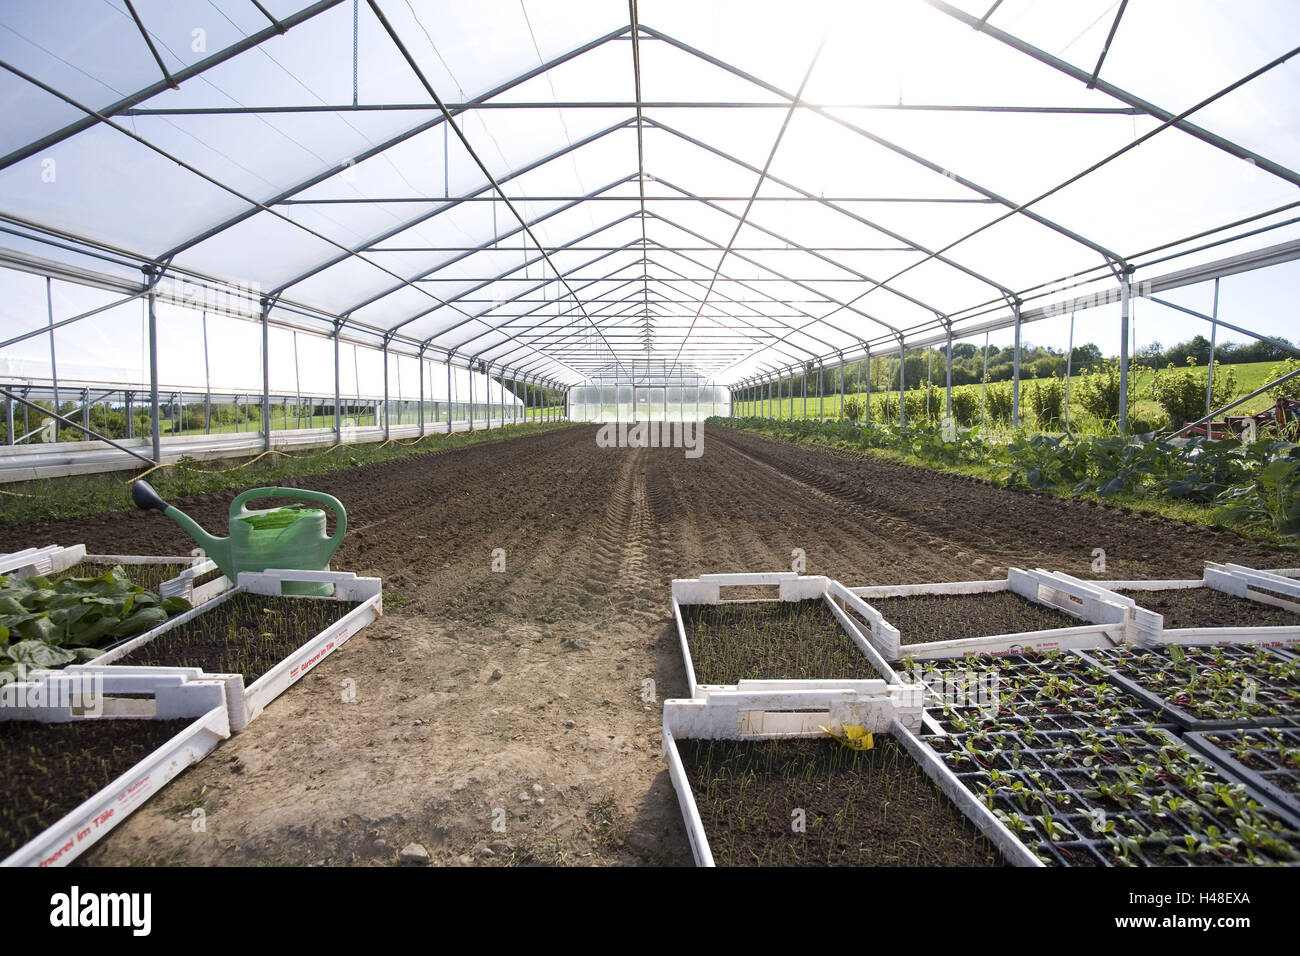 Greenhouse, inside, hothouse, market garden, cultivation, cultivation, plants, vegetables, vegetable plants, the - Stock Image